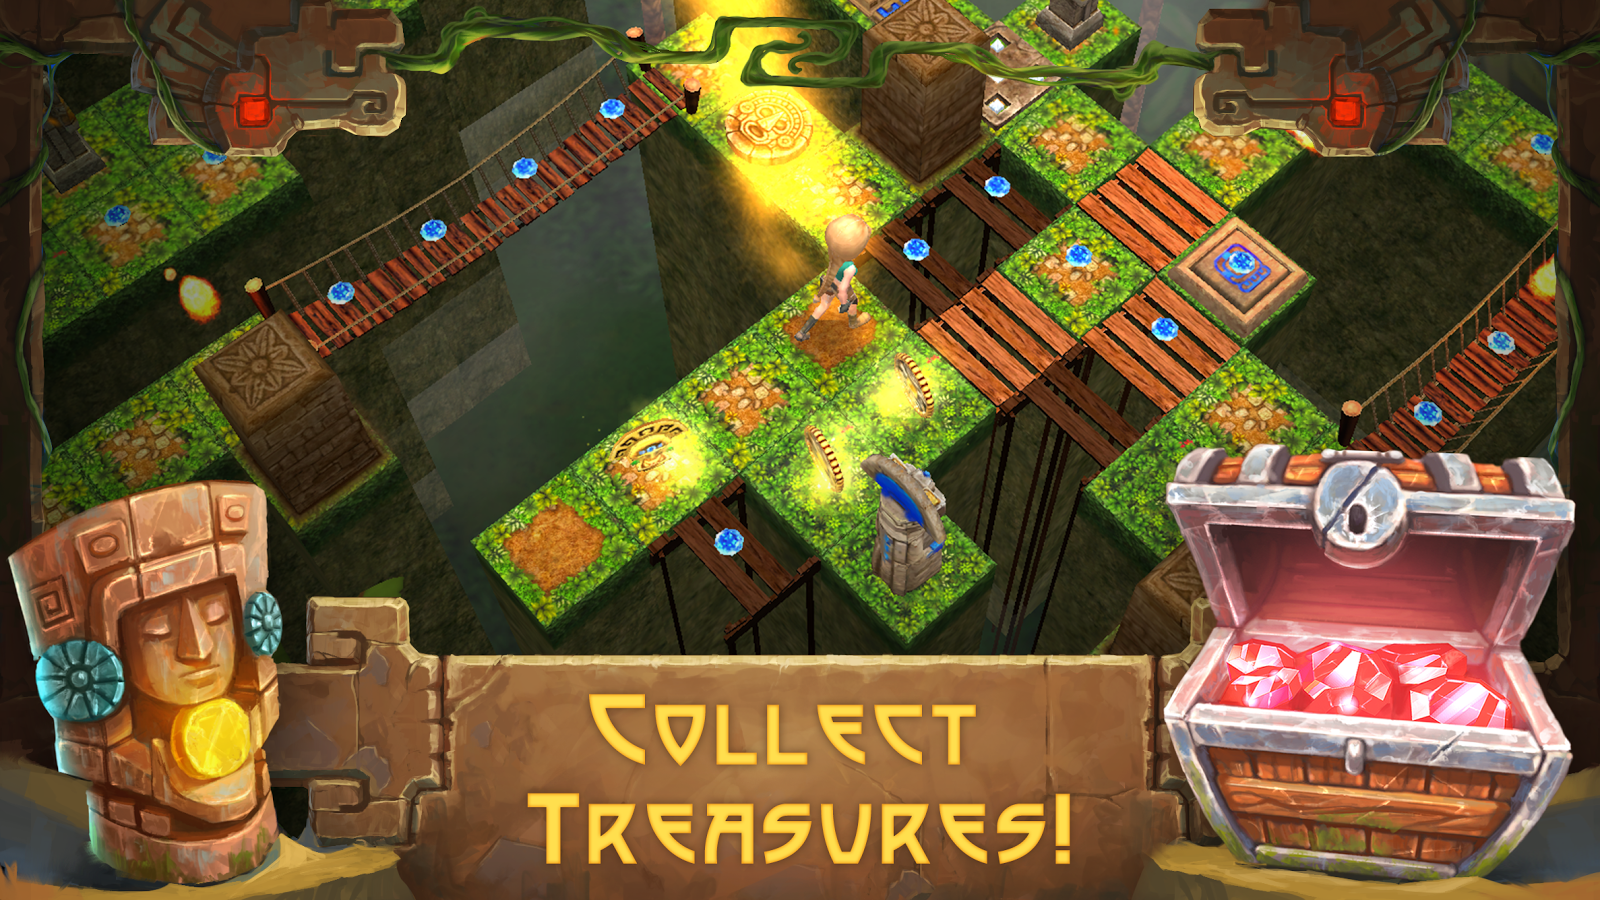 Traps and Treasures Screenshot 1